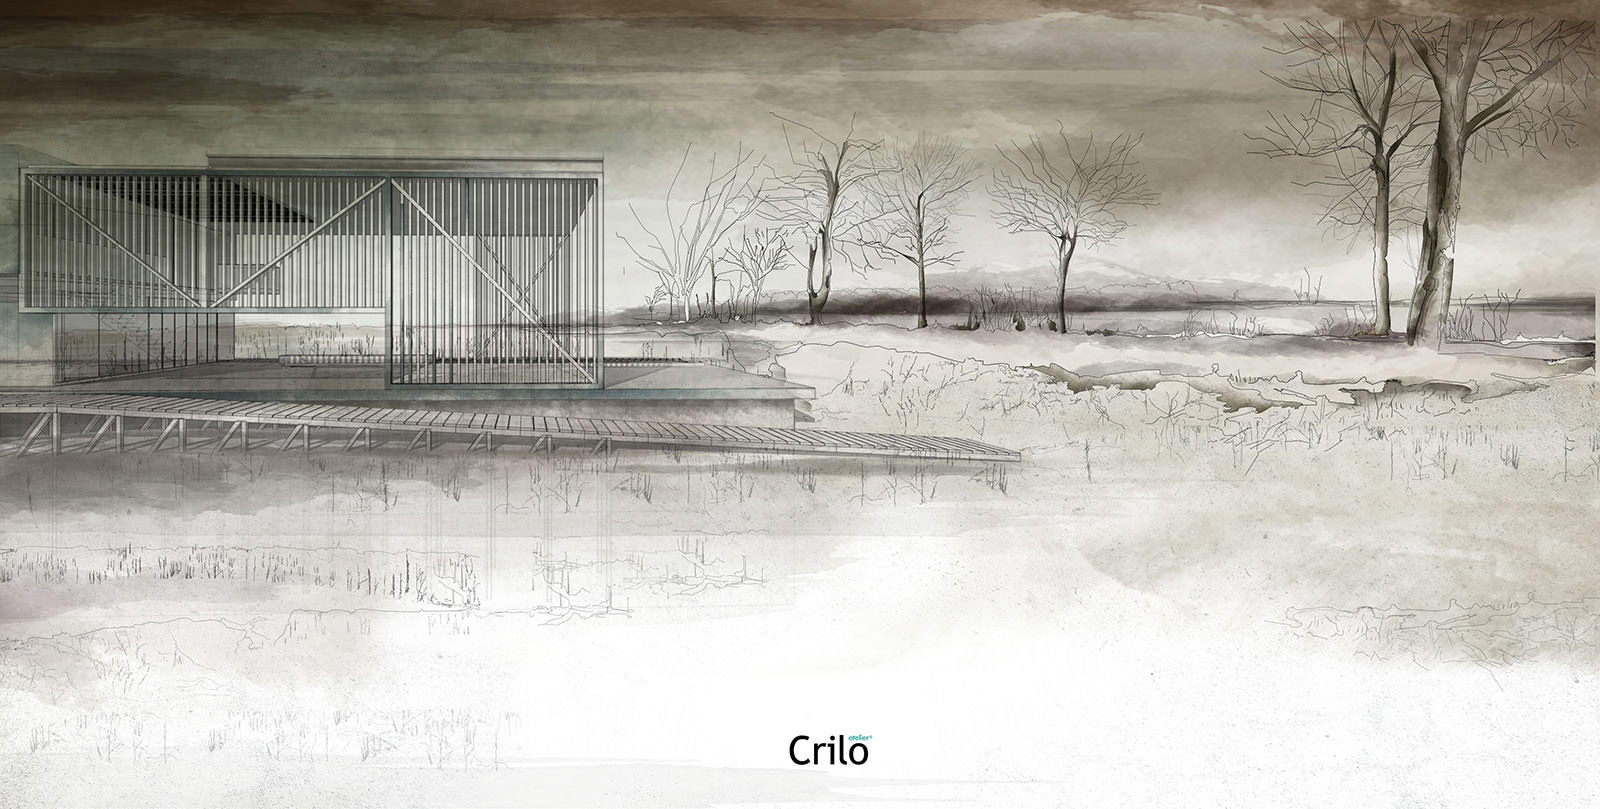 Architectural Watercolors by Atelier Crilo - 3D